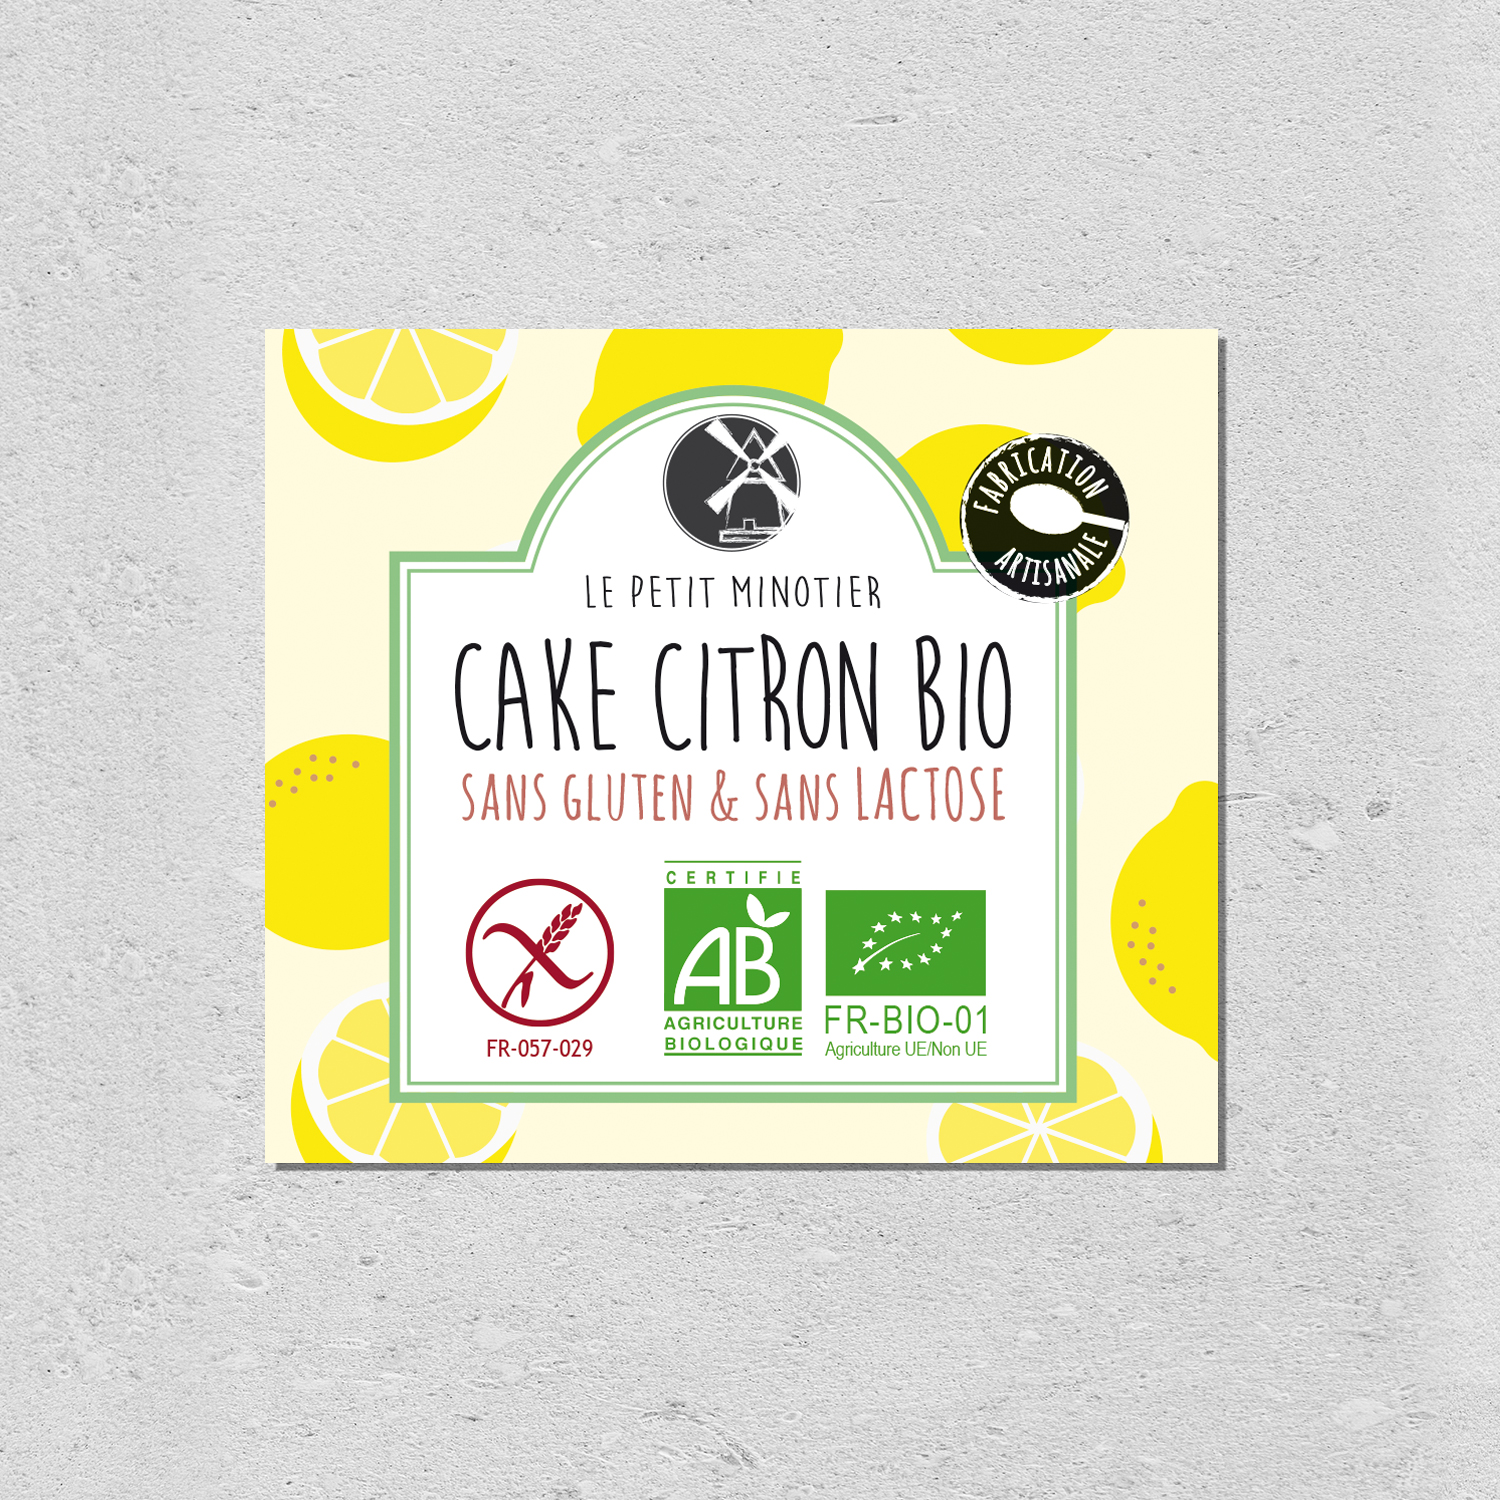 design packaging cake citron bio le petit minotier